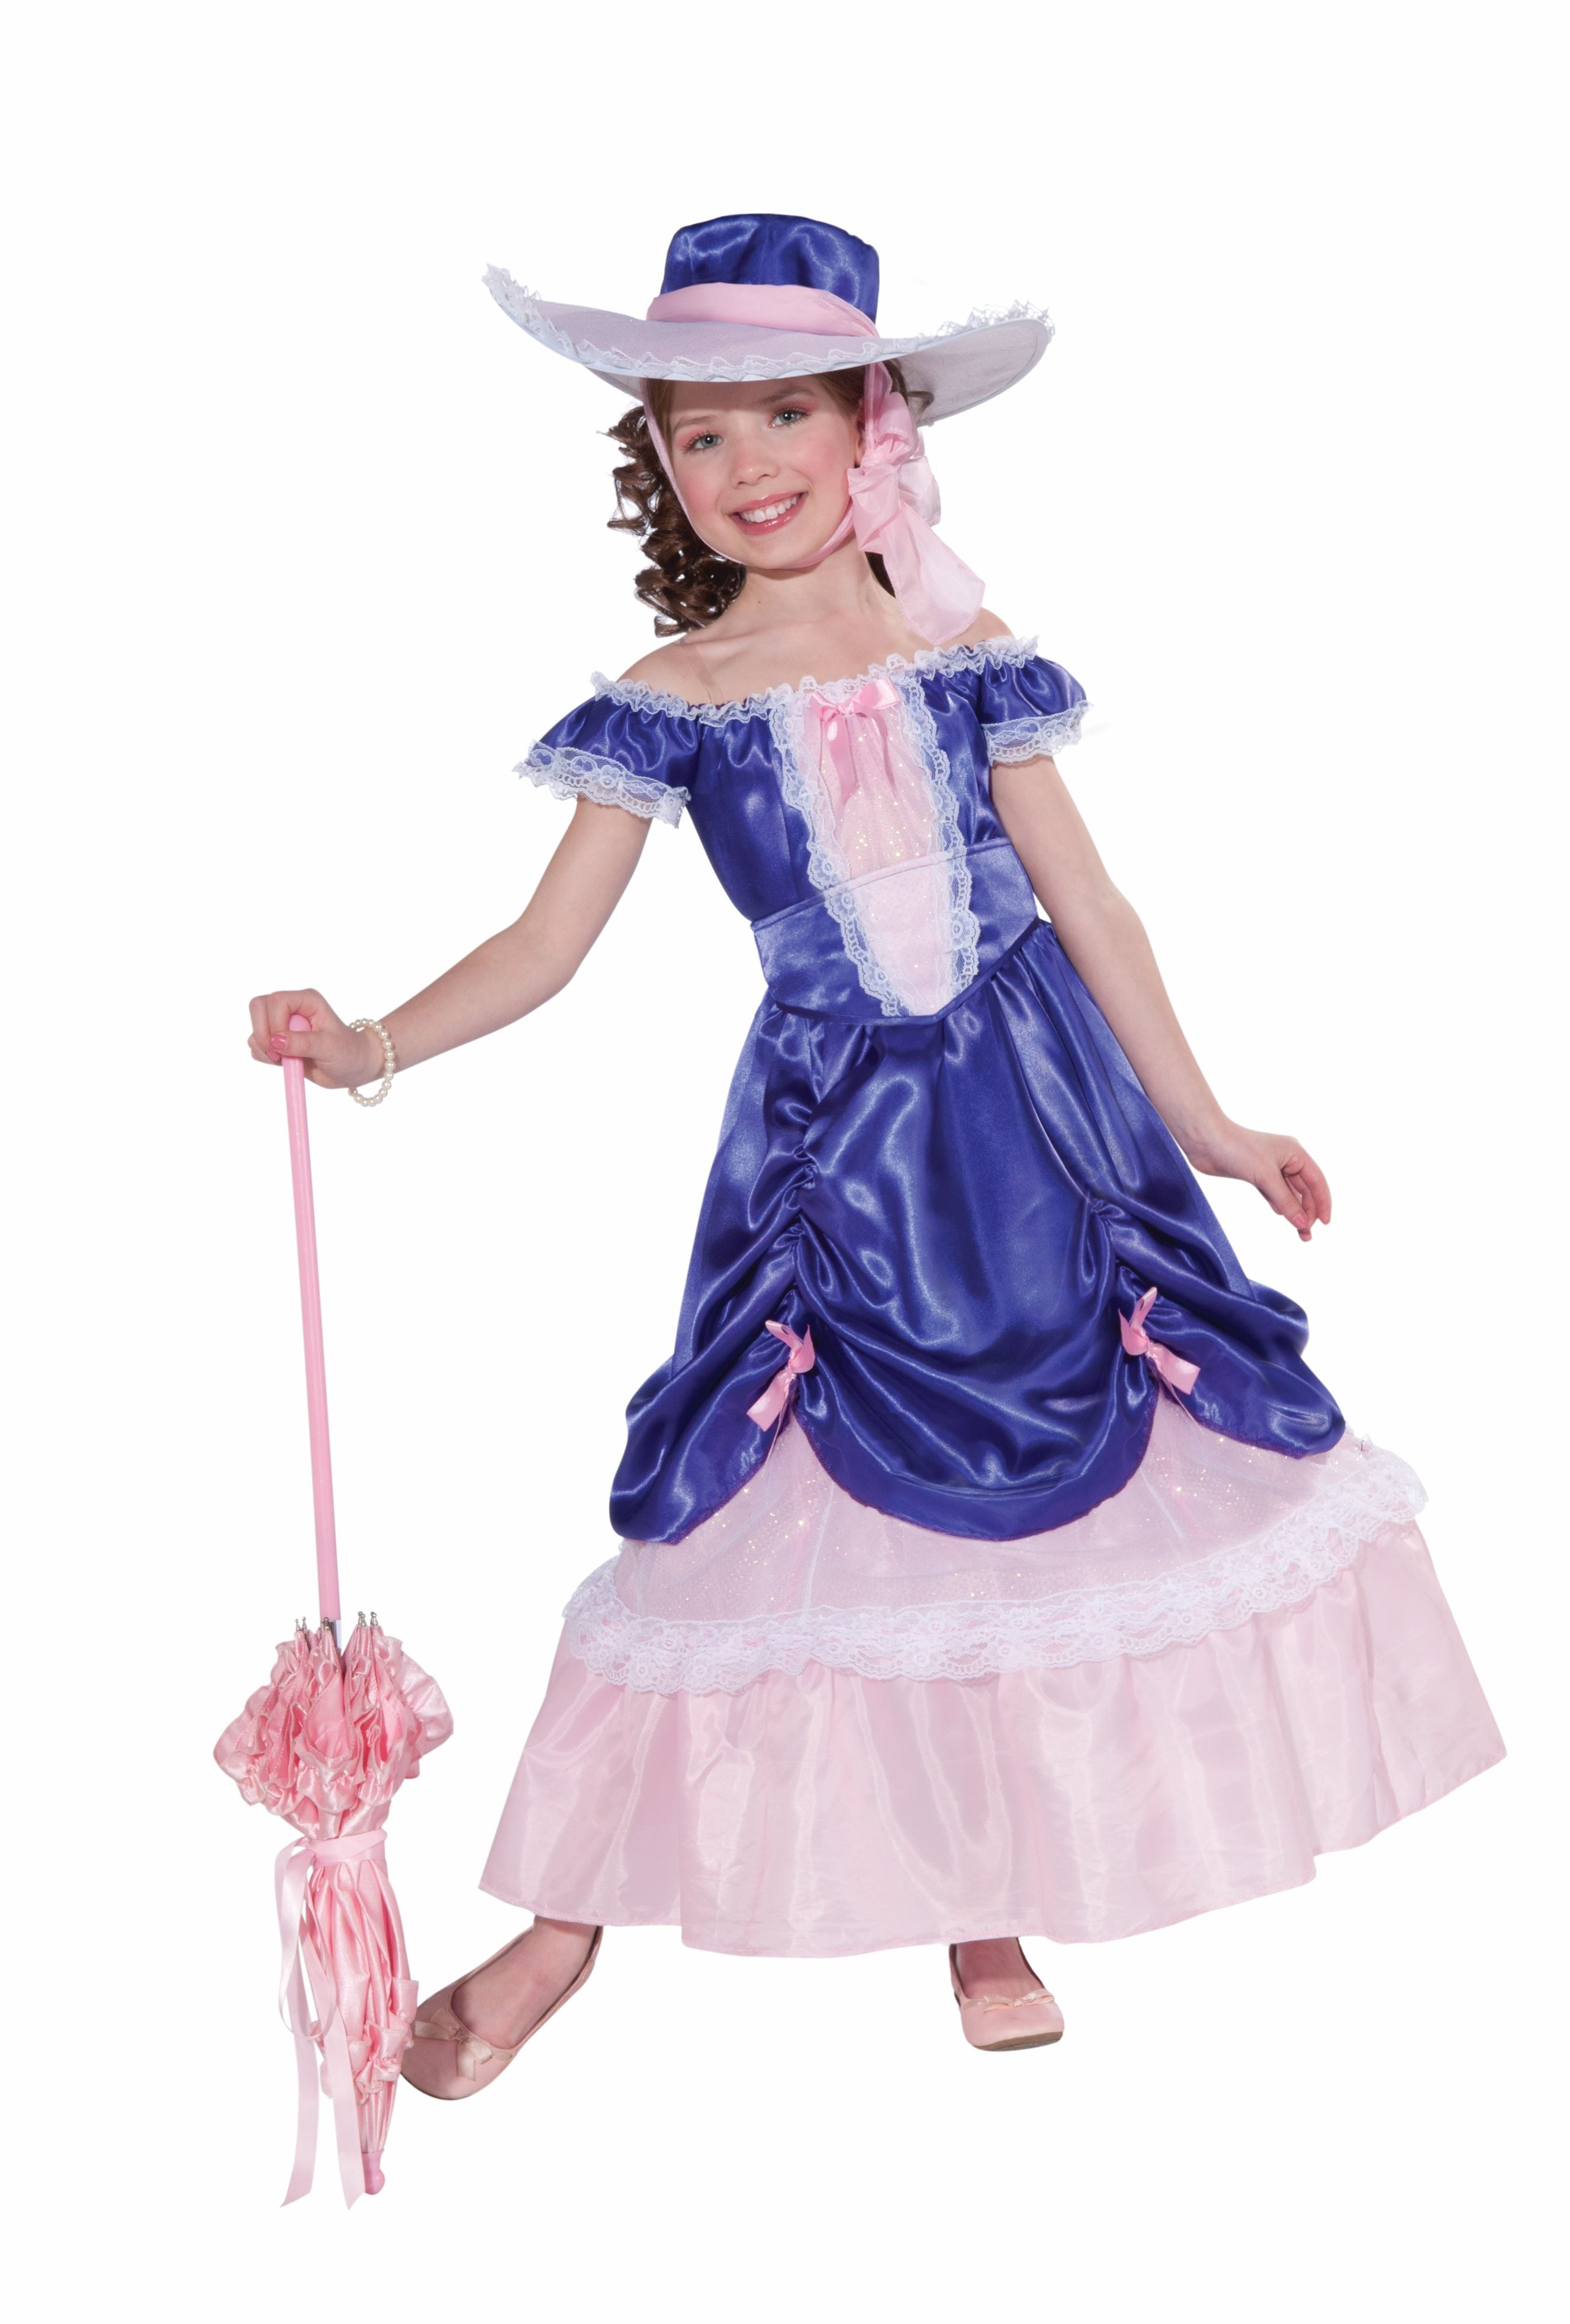 Kids Blossom Southern Belle Girls Costume   $33.99   The Costume Land